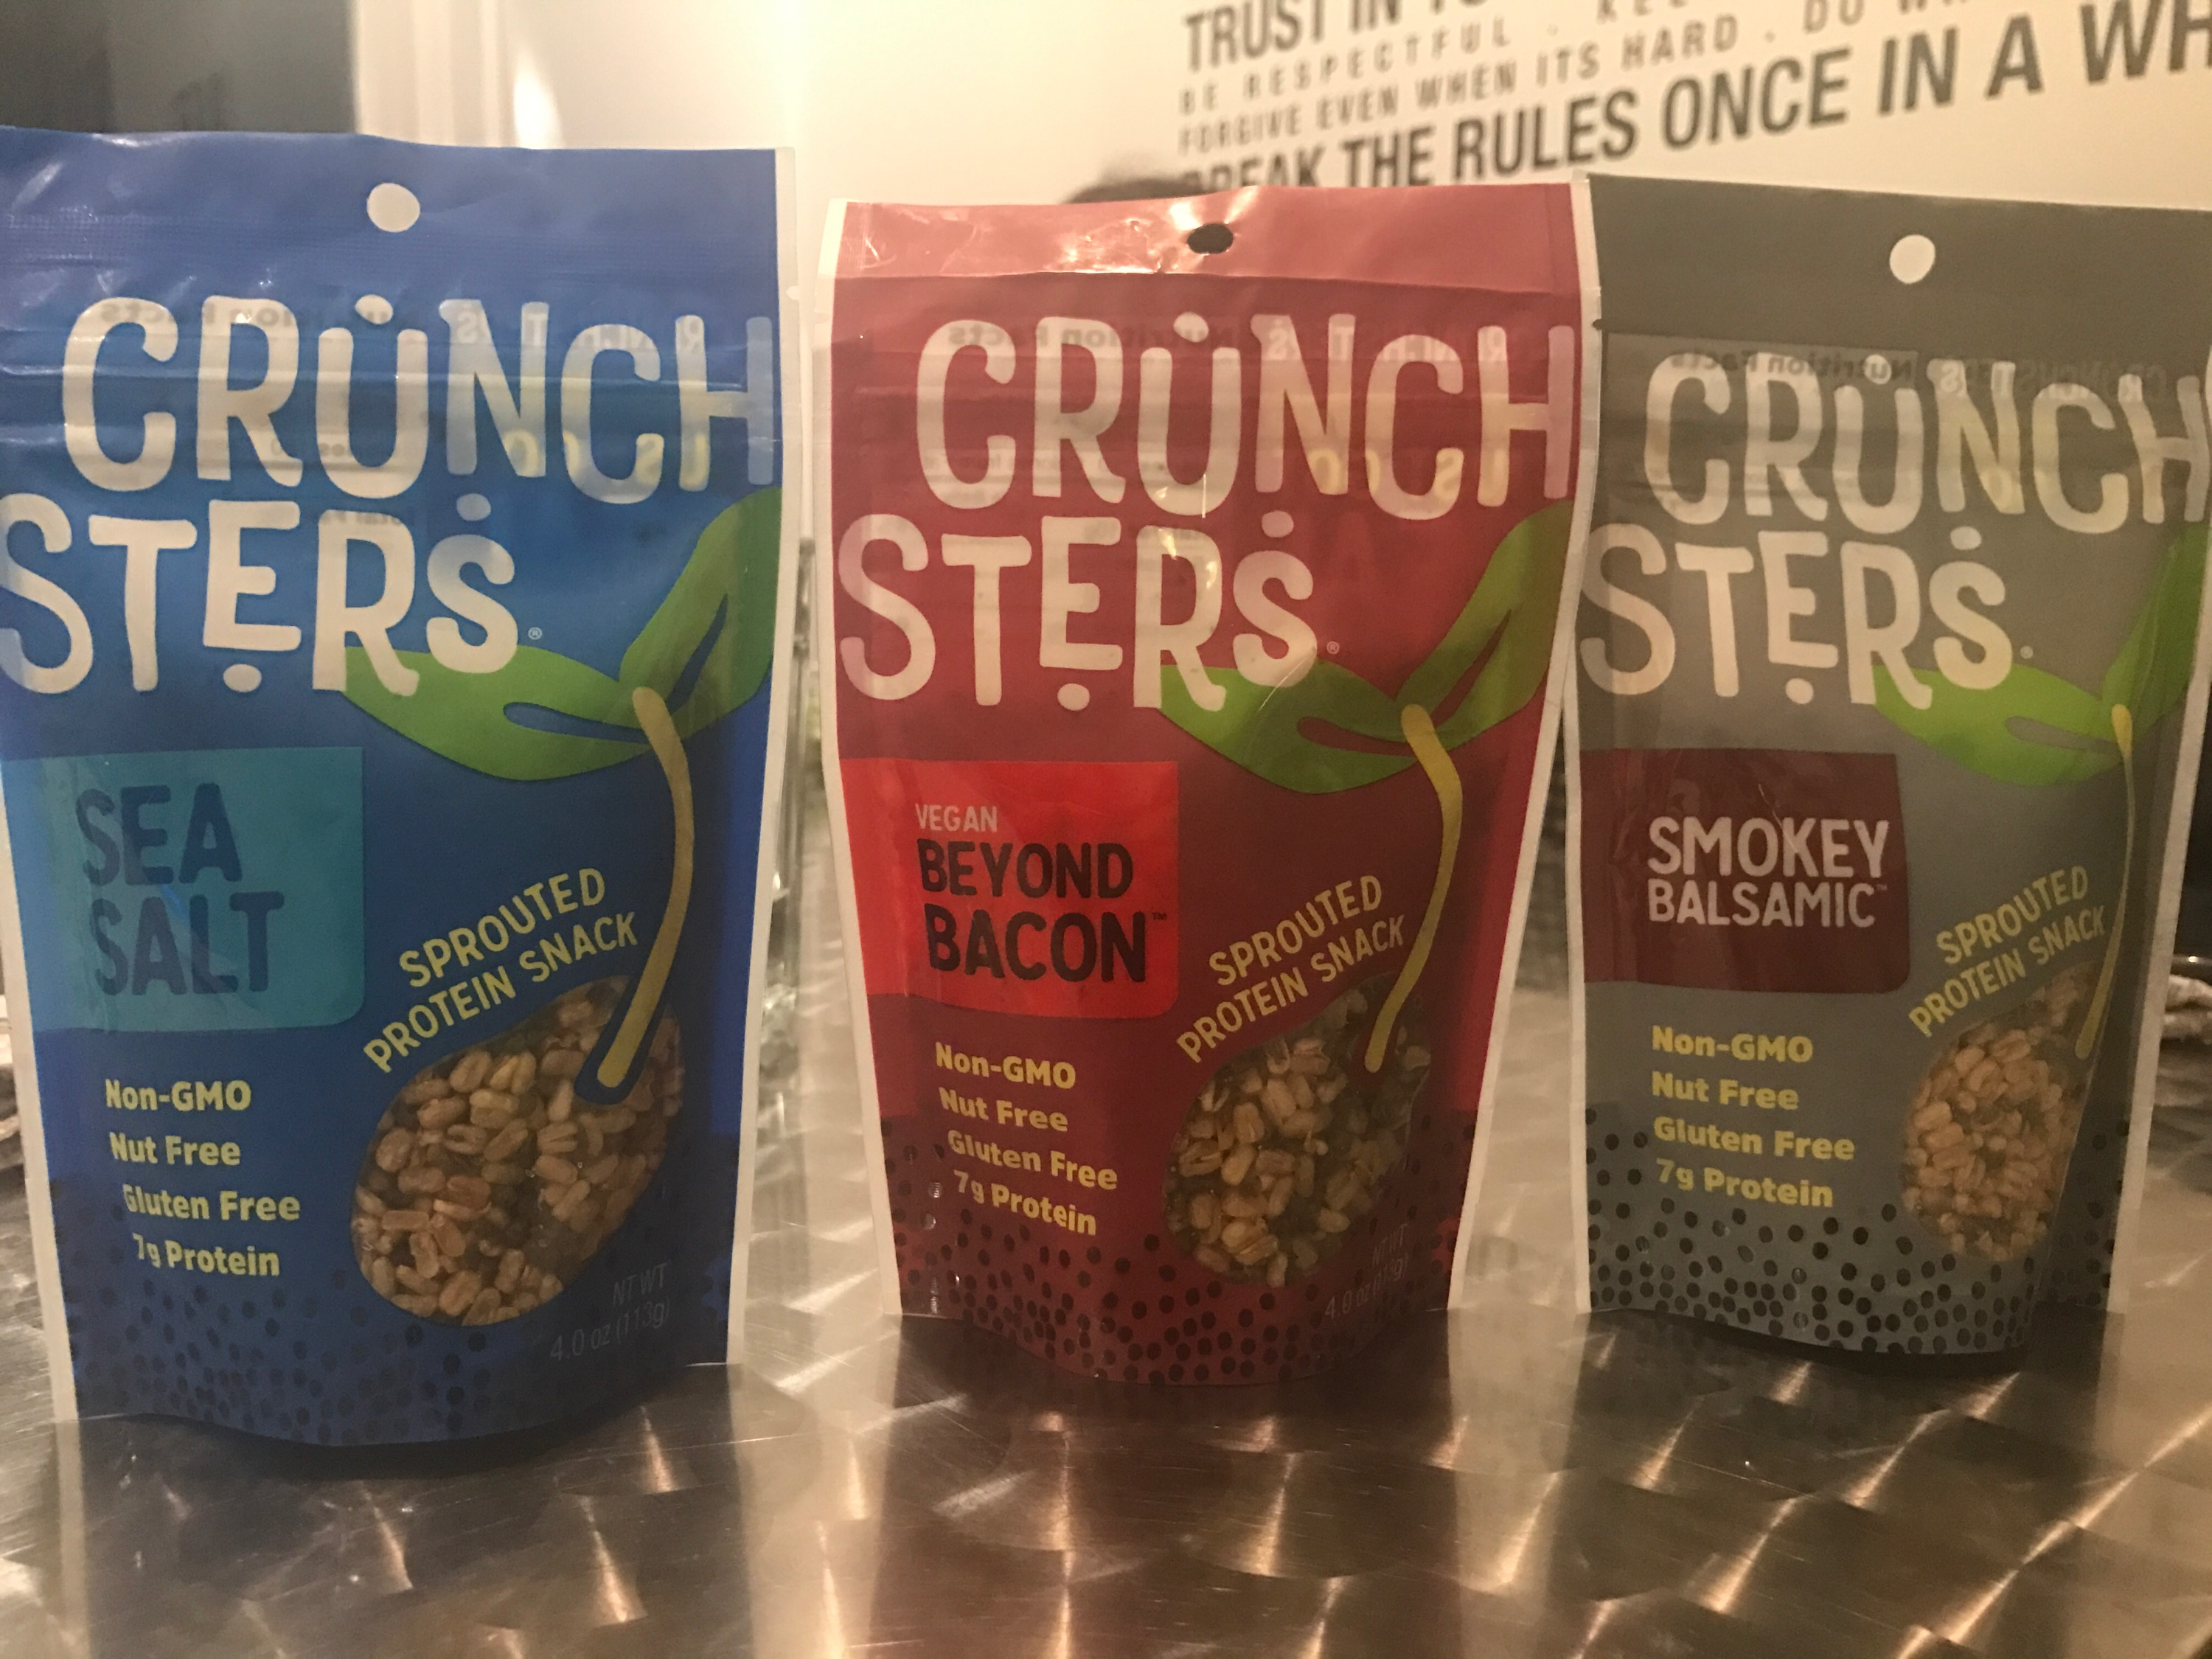 Crunchsters!